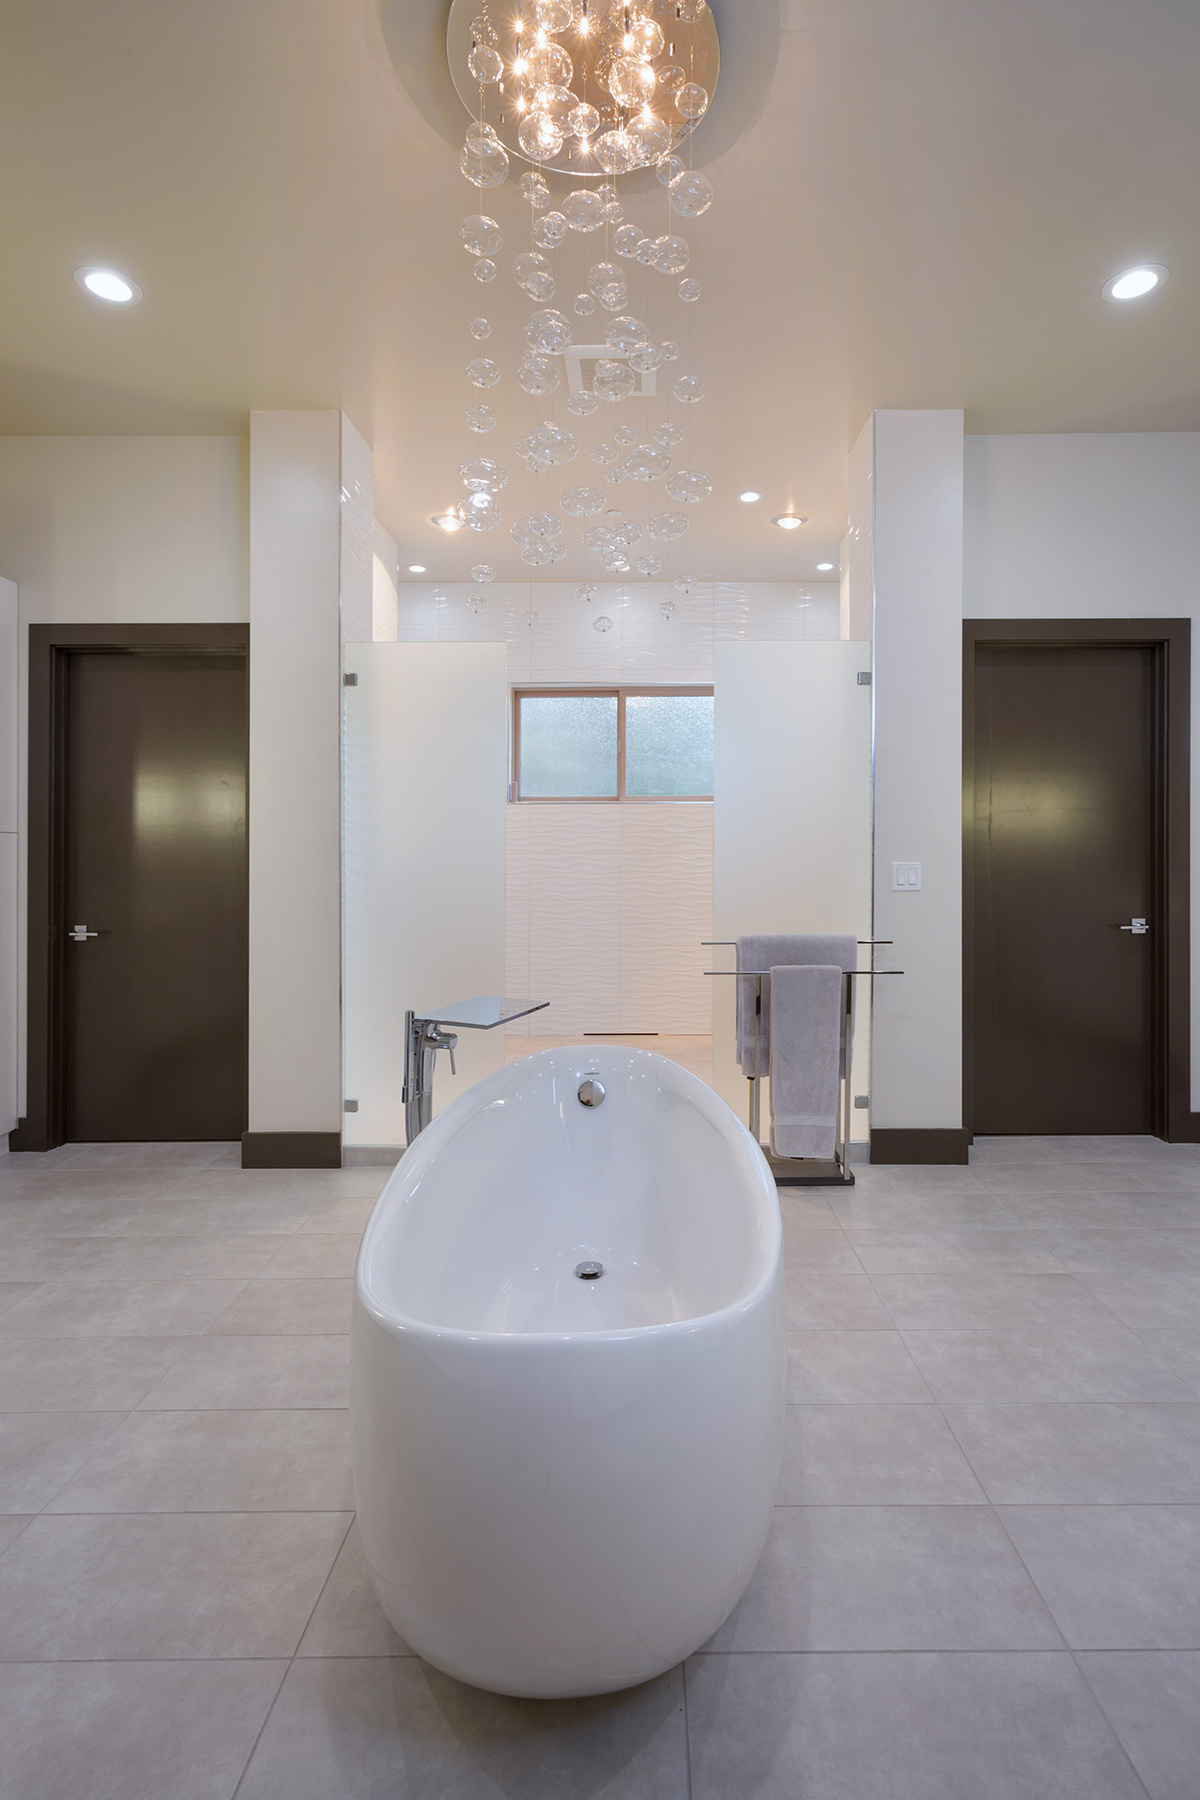 bathroom-interior-design-los-altos-california-ktj-design-co-8.jpg